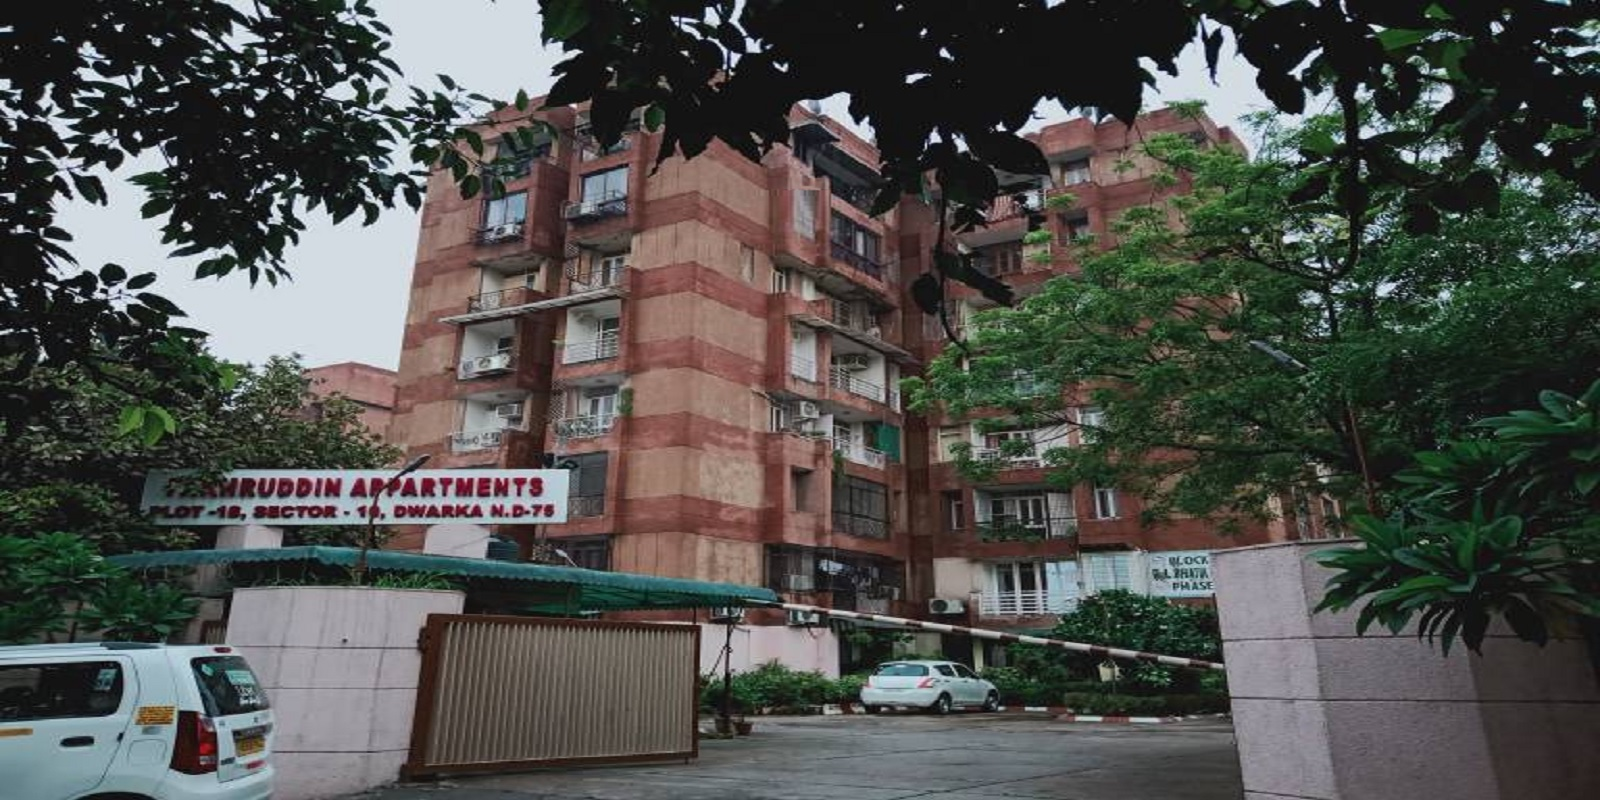 fakhruddin apartments project project large image1